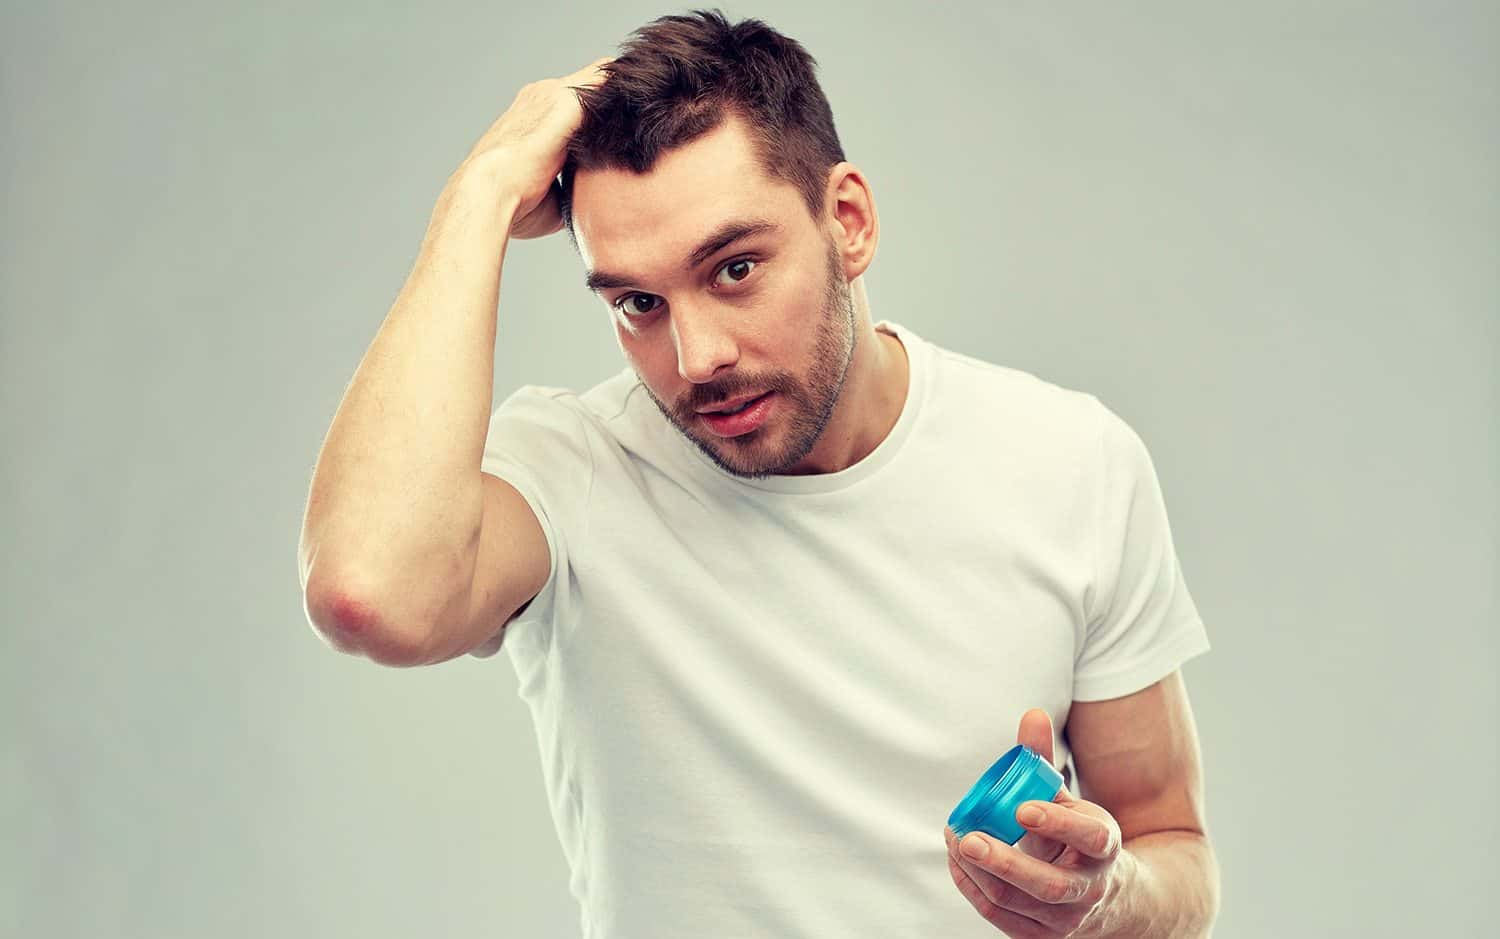 Men using a hair product